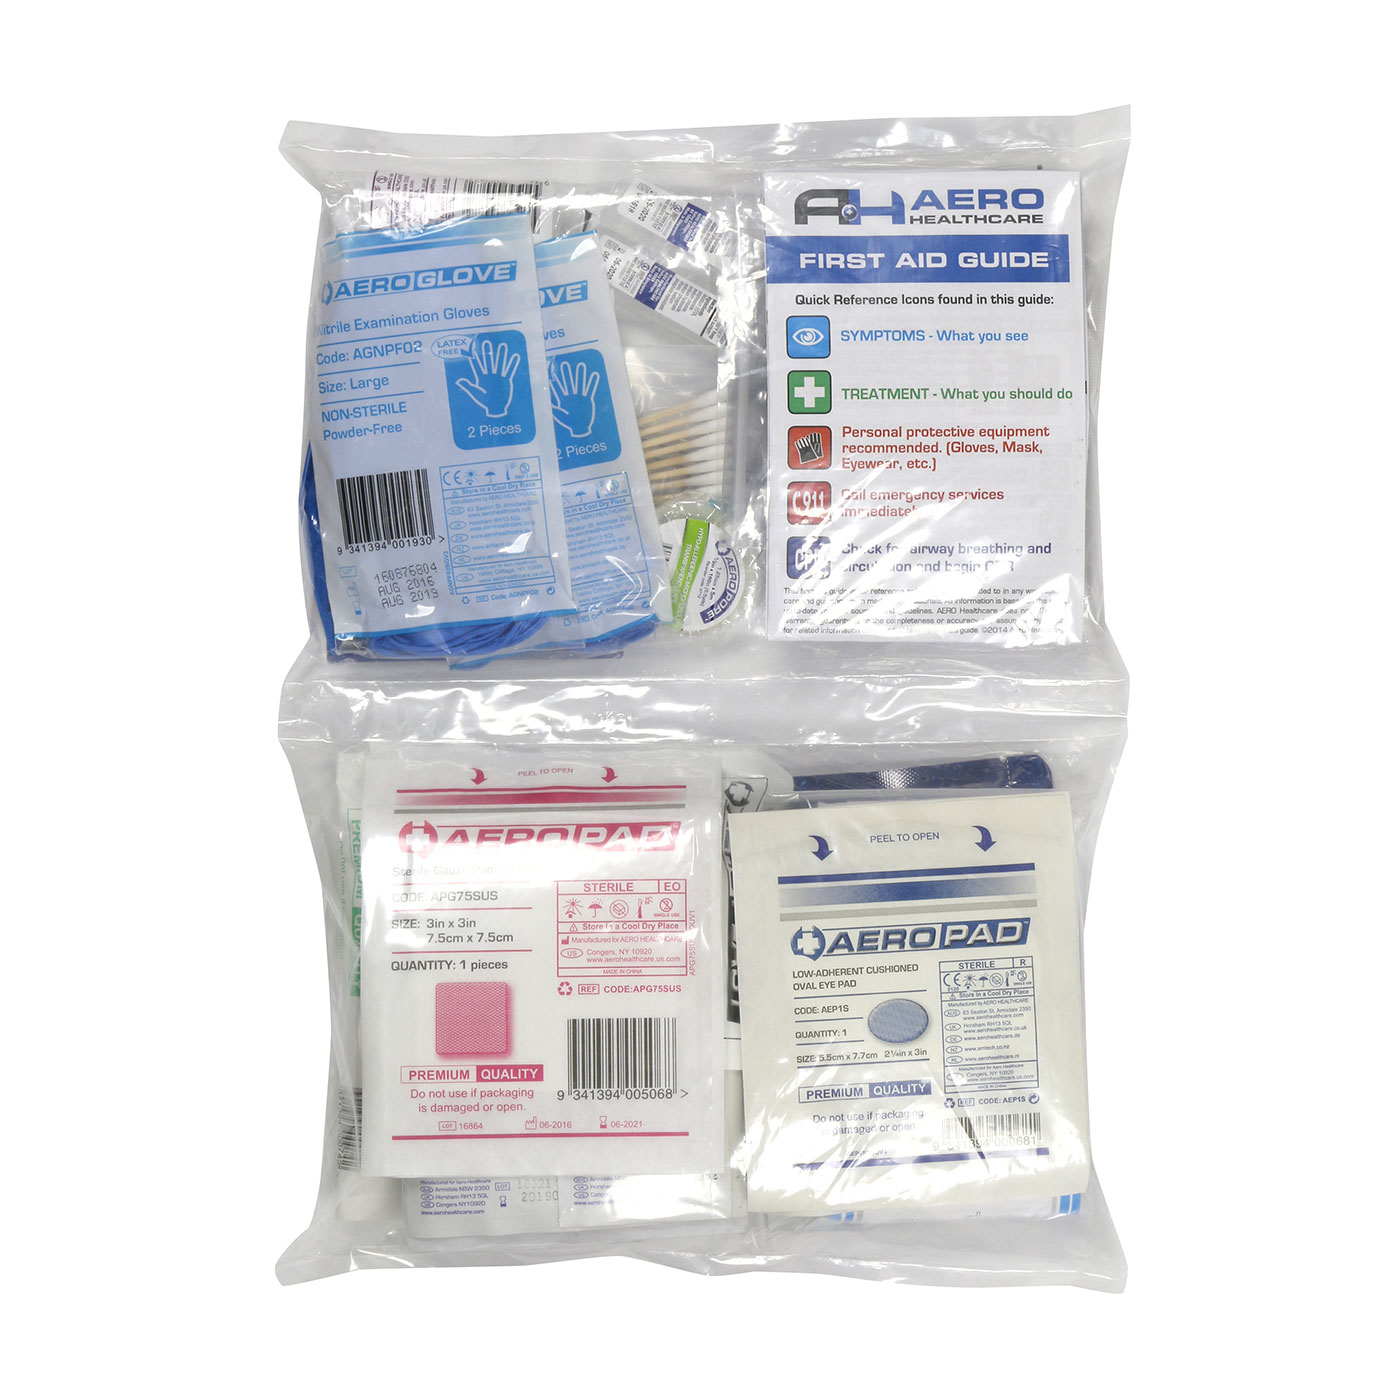 ANSI Class A First Aid Refill Pouches - 25 Person, Clear, KIT